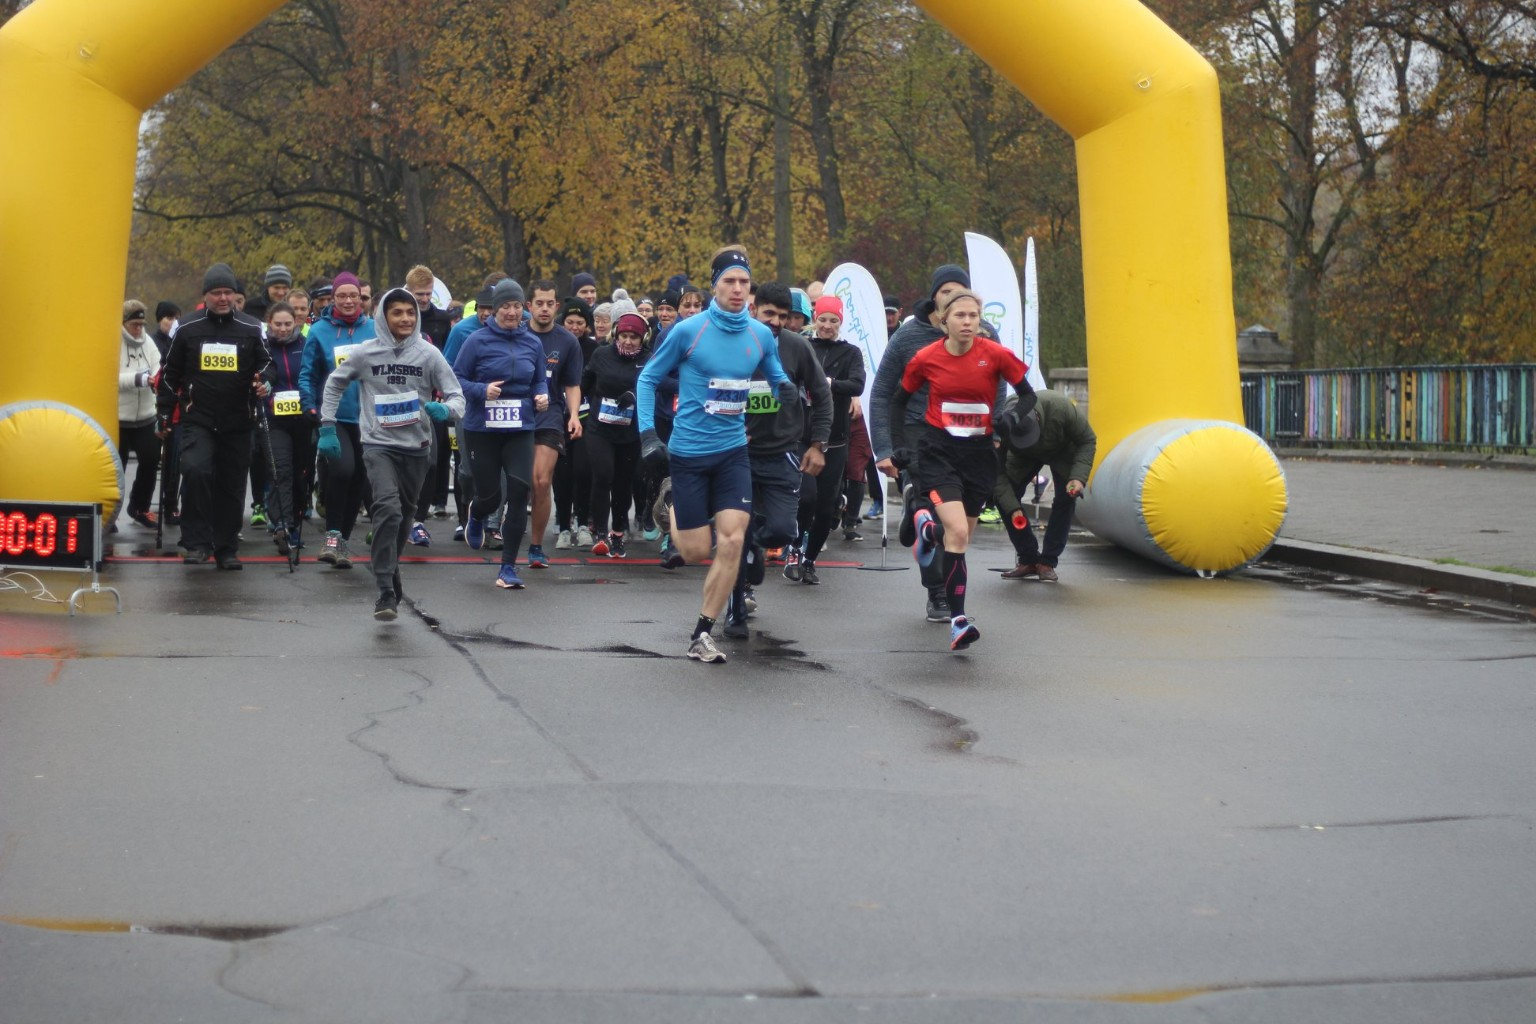 /d/evt/CharityWalkRunBerlinTempelhoferFeldBerlin/1588495651747.jpg